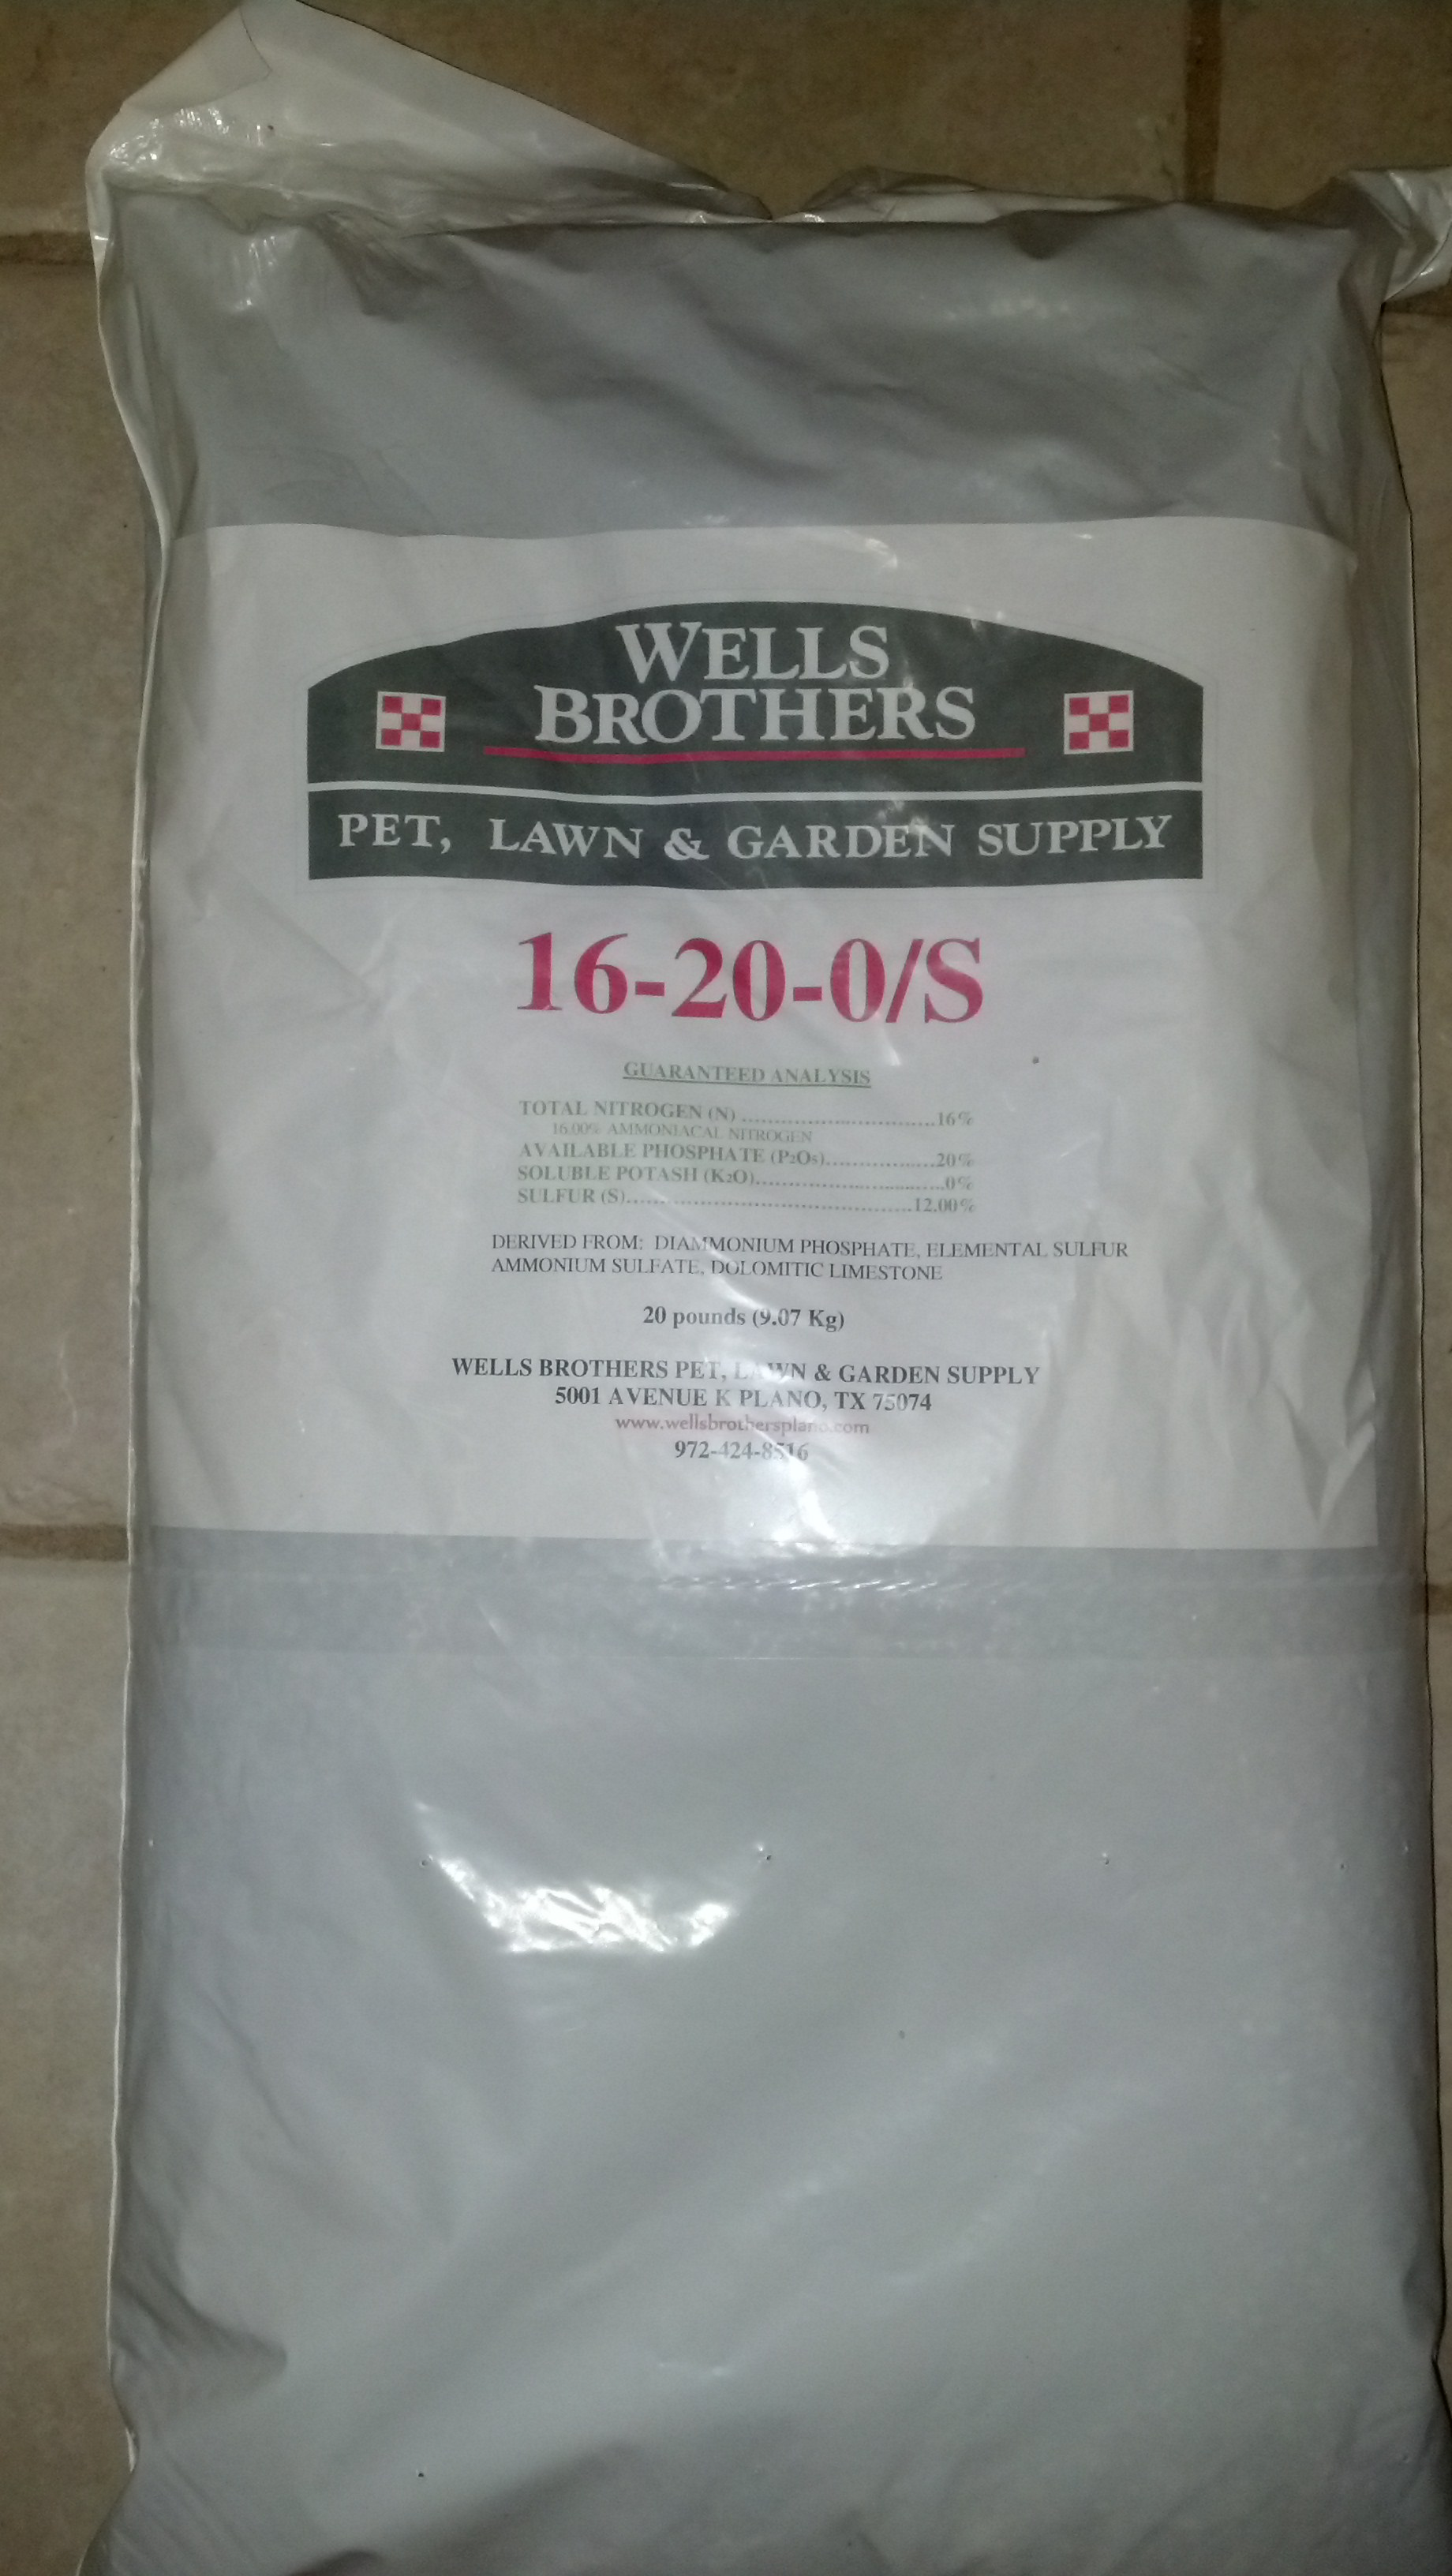 Lawns Archives - Page 13 of 22 - Wells Brothers Pet, Lawn